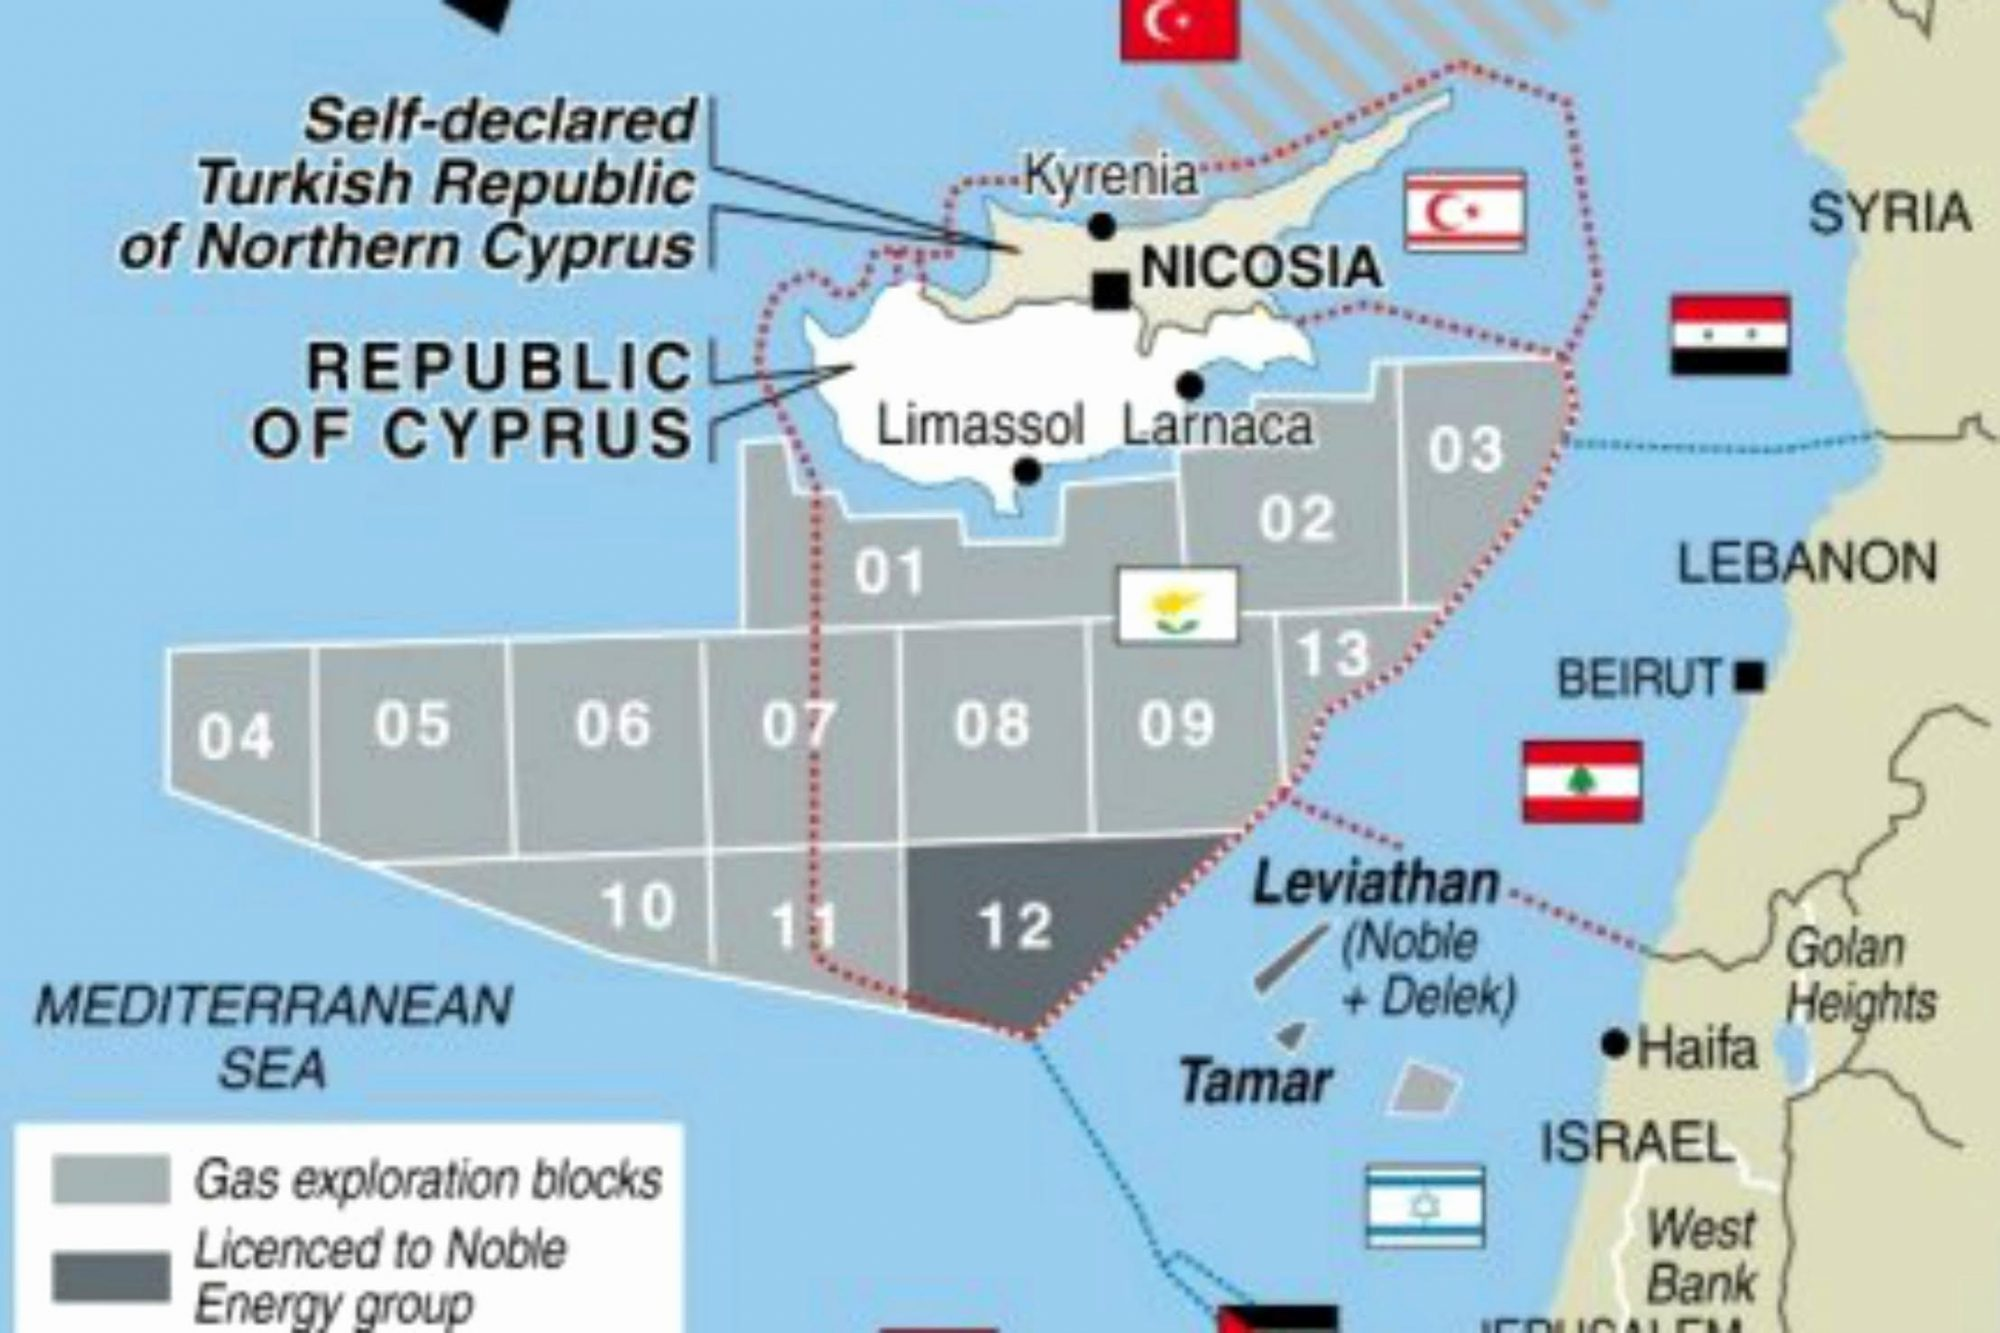 Iran's stance affects the energy balance in East Med